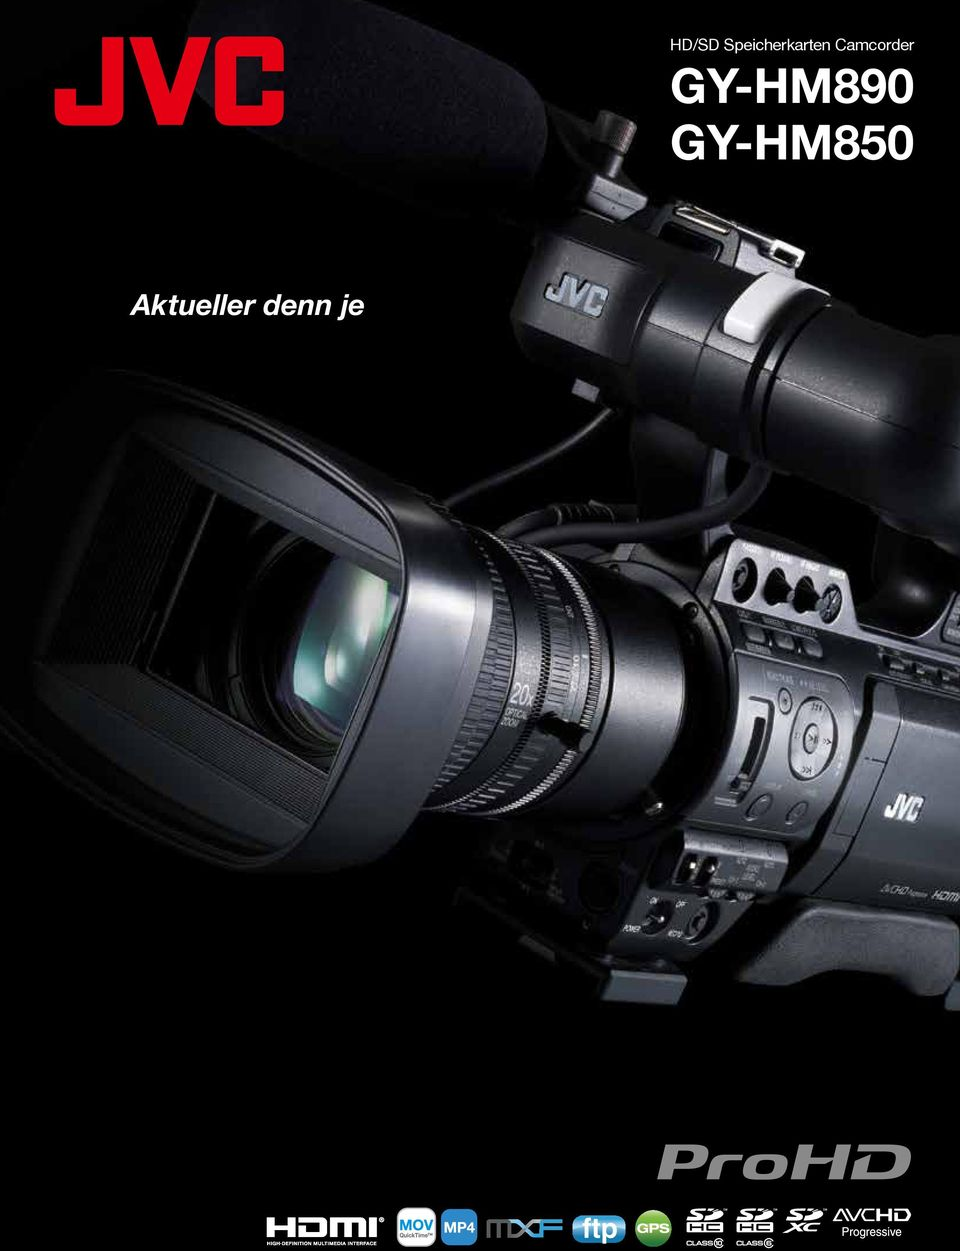 Camcorder GY-HM890